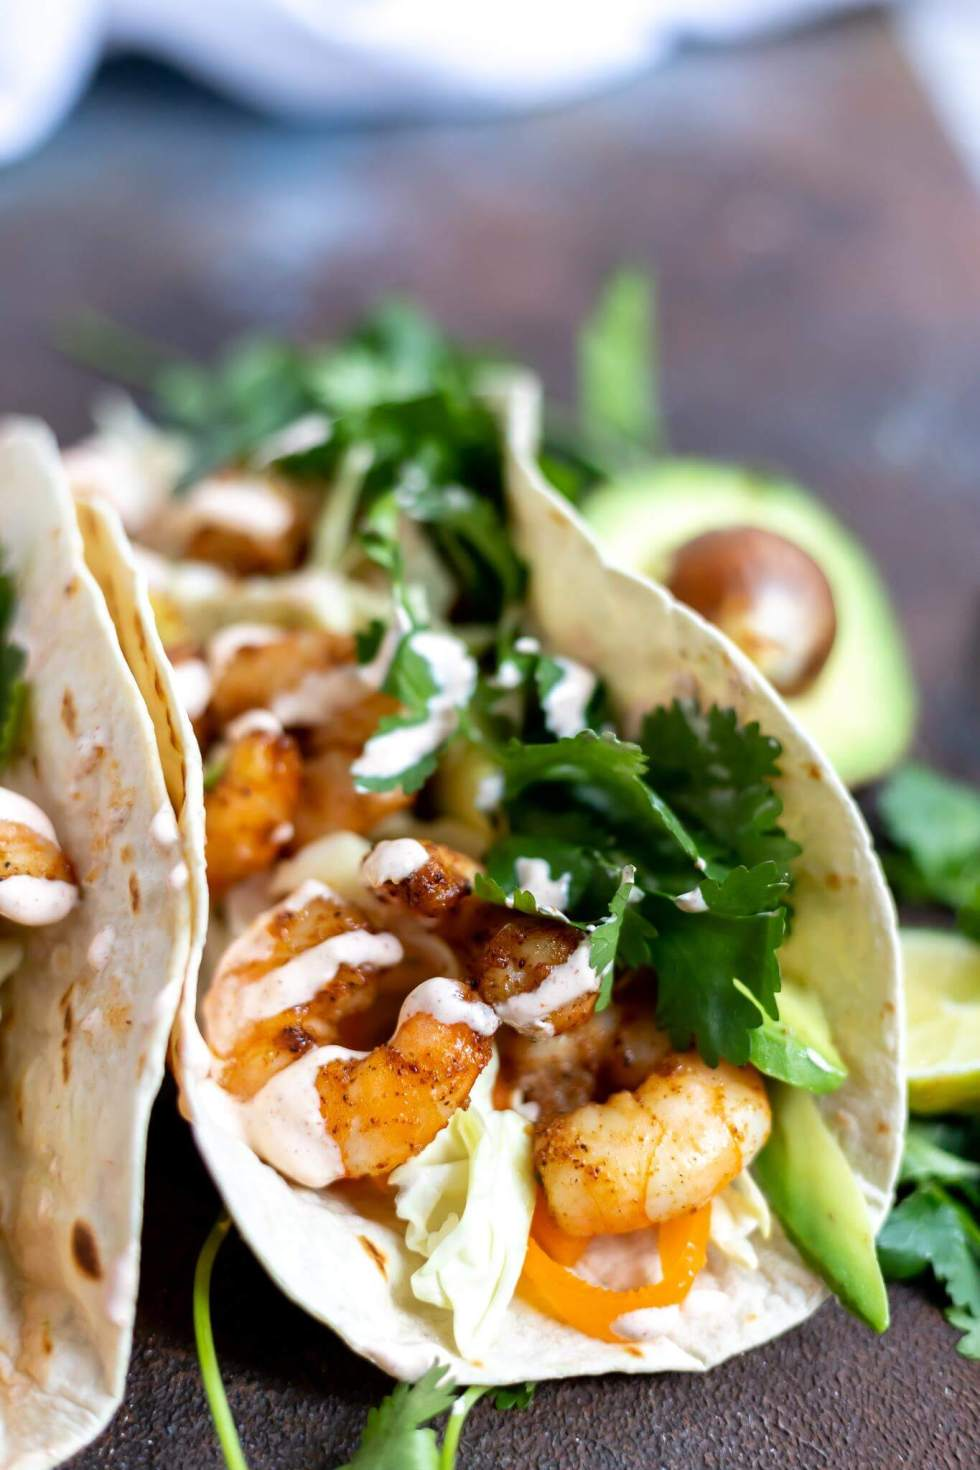 tortilla loaded with shrimp, cilantro, avocado, cabbage and a creamy sauce for shrimp tacos